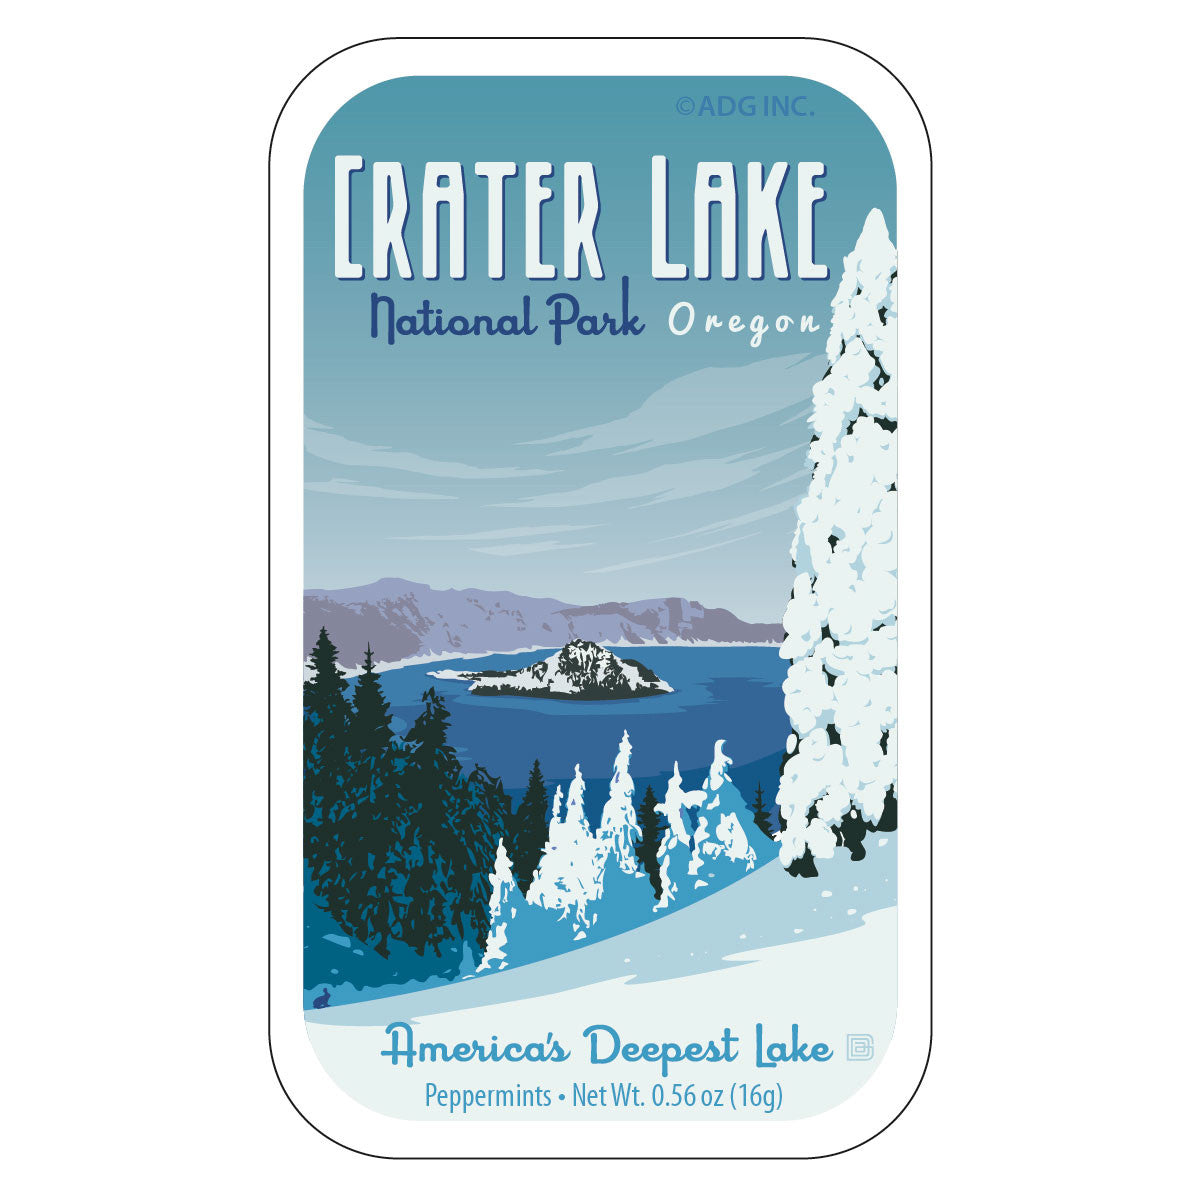 Crater Lake Oregon - 1027A